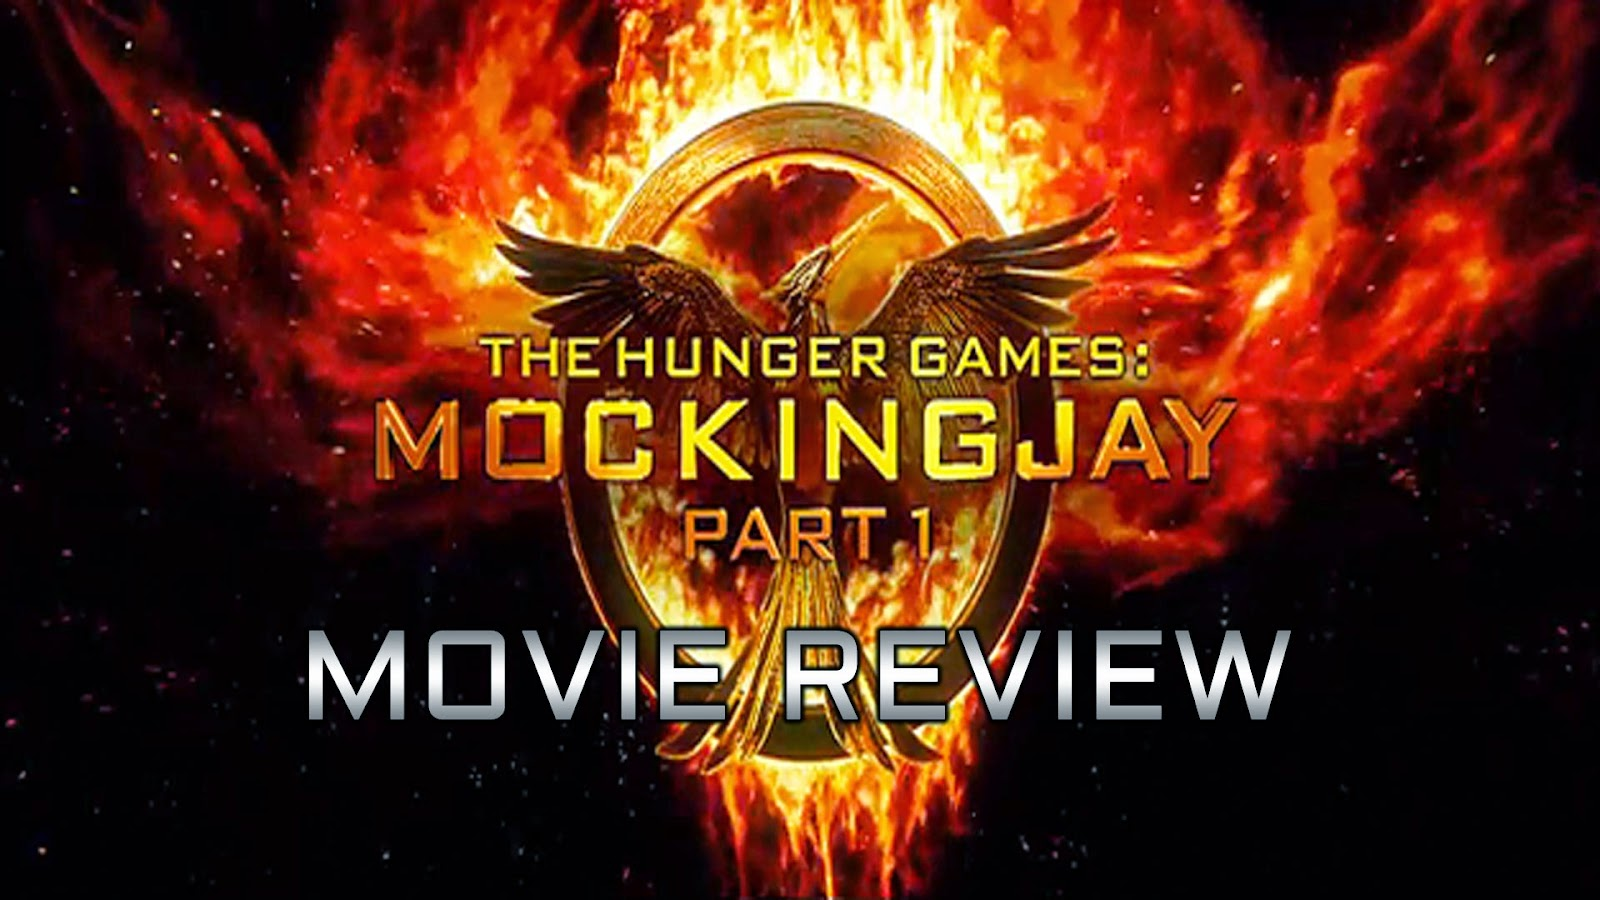 Watch The Hunger Games Mockingjay Part 1 Download Torrent Online